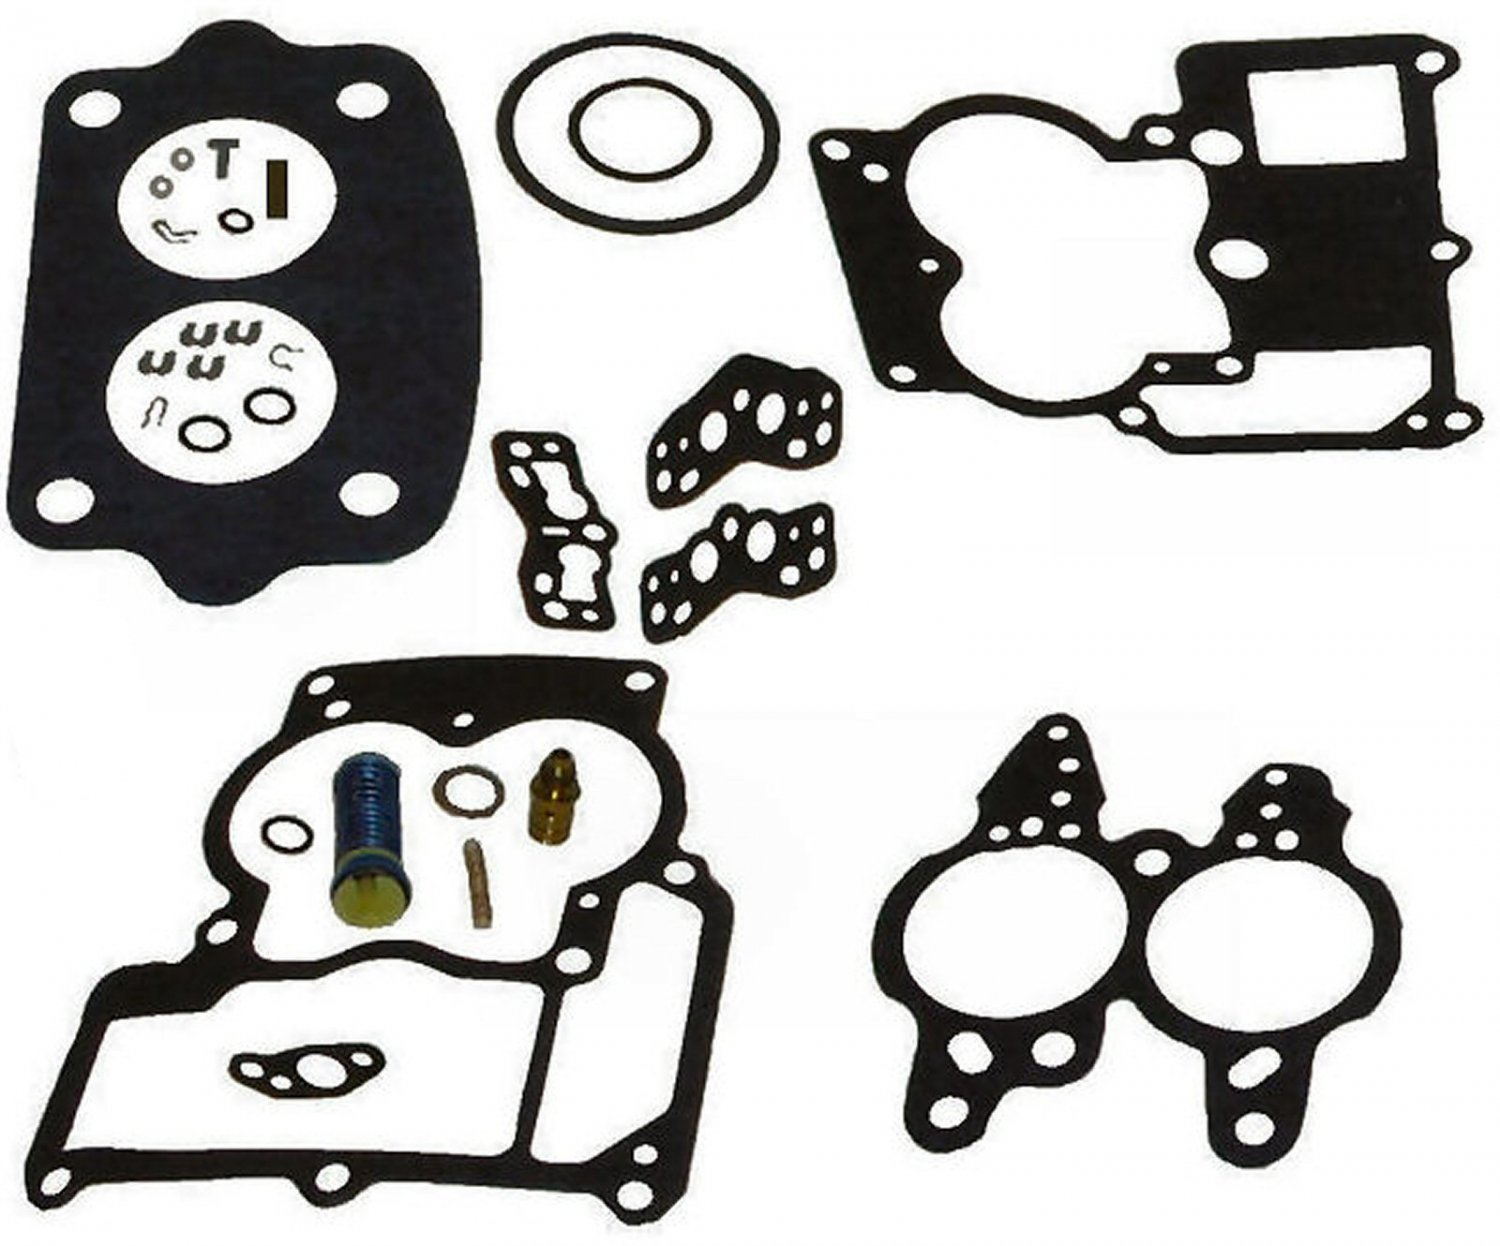 2BBL Rochester Carburetor Repair Kit for Inline 4 and 6